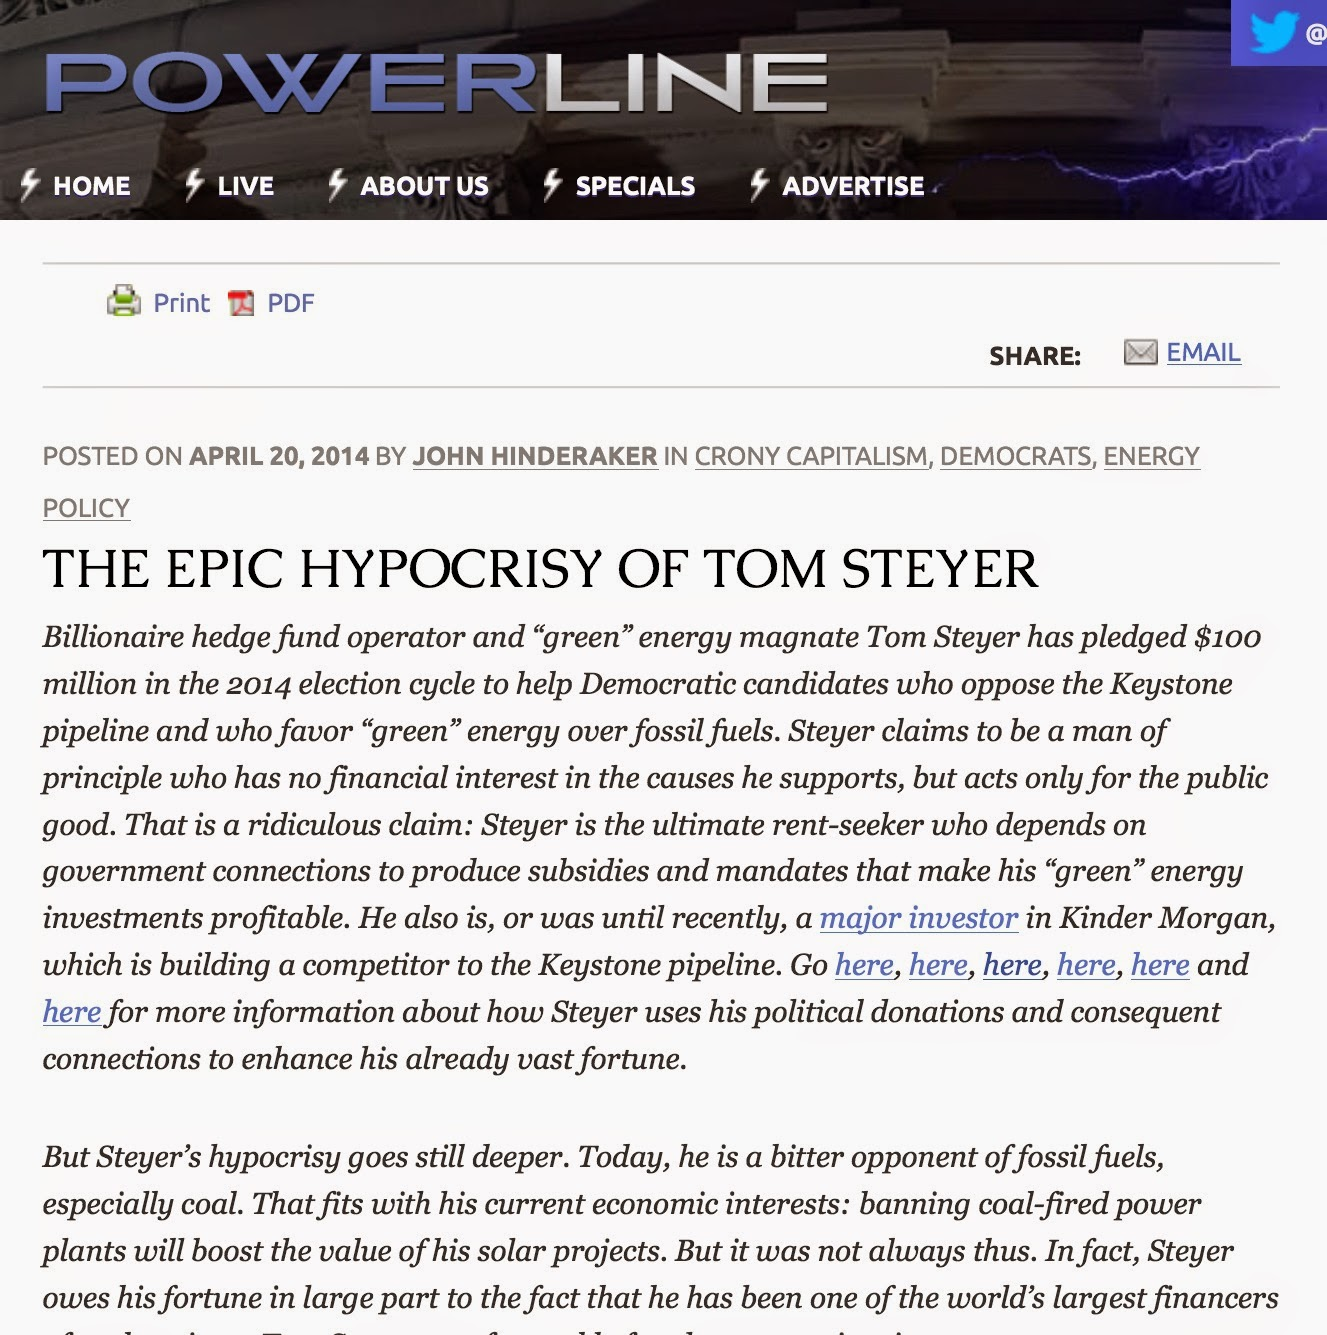 April 20, 2014: THE EPIC HYPOCRISY OF TOM STEYER